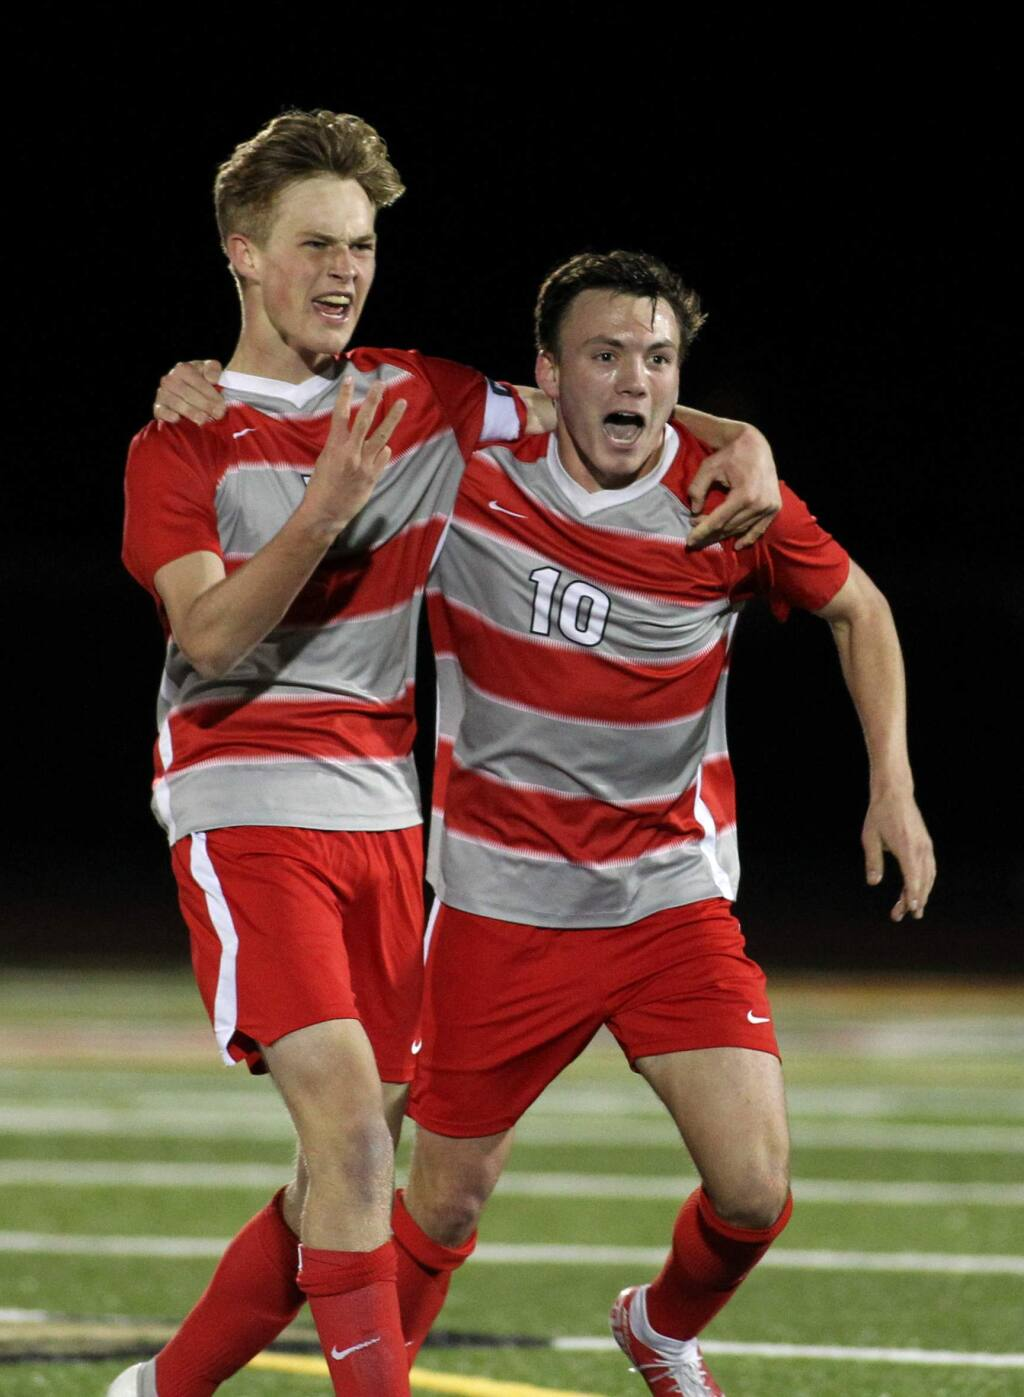 Montgomery's Kevin Welch, left, and Zack Batchelder celebrate victory at the end of their NCS soccer championship contest against Berkeley in February. (Darryl Bush / For The Press Democrat)